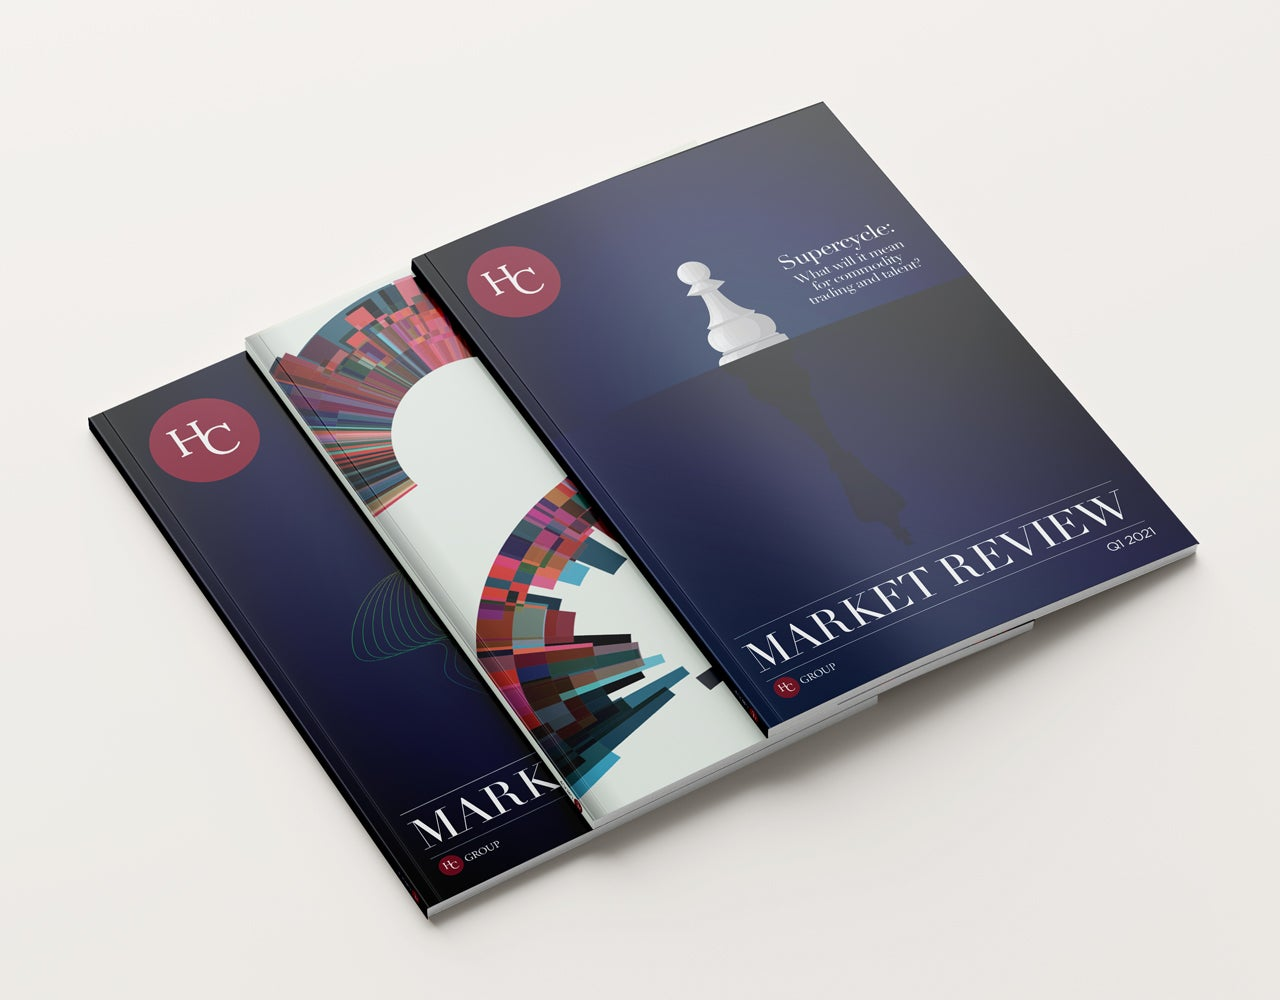 HC Group Market Review Brochure Covers